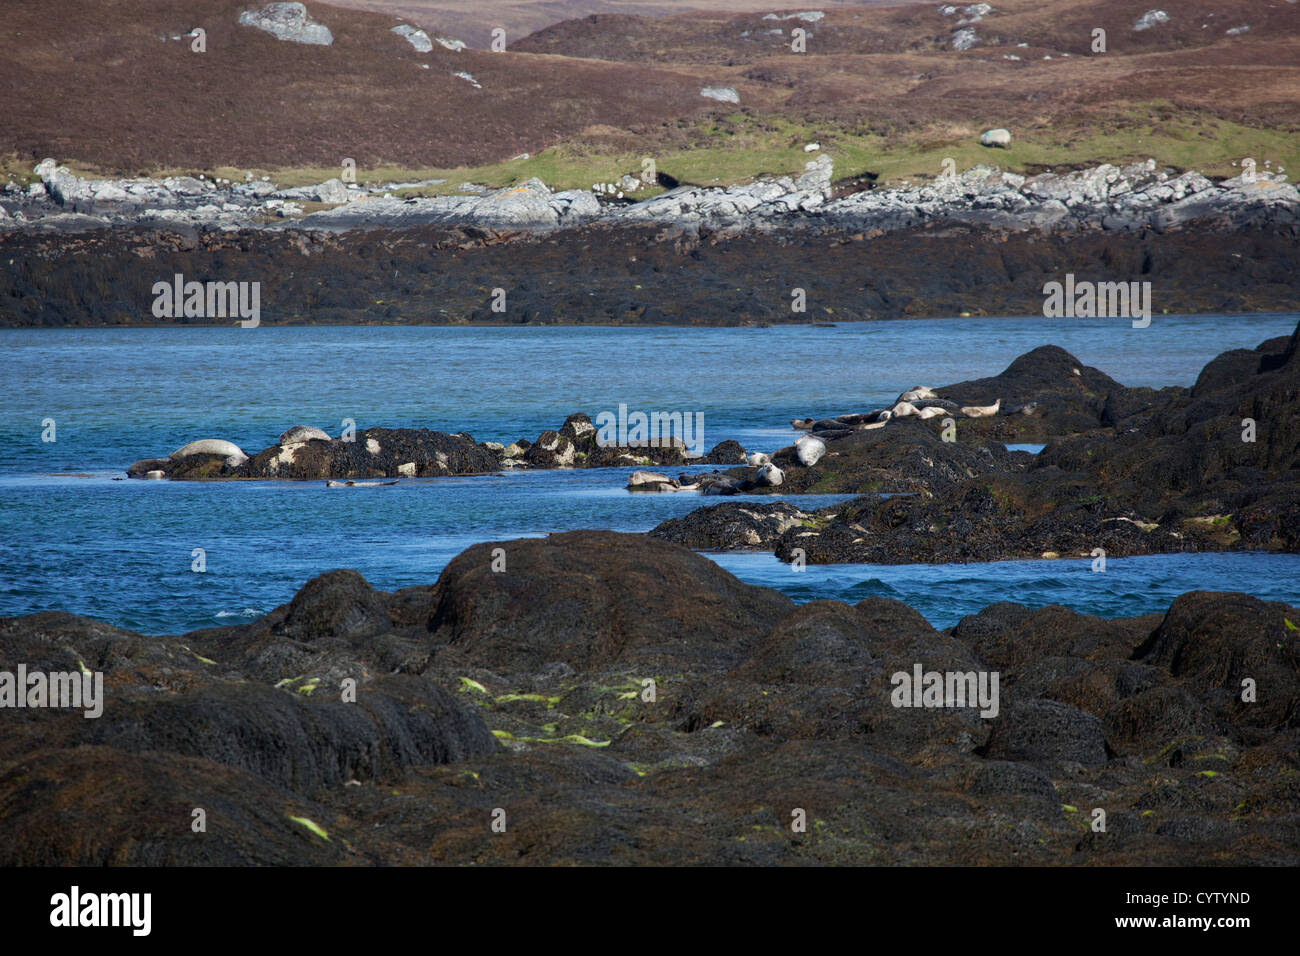 View of seals at 'Seal Point' at Flodaigh on Benbecular, Outer Hebrides, Scotland, UK - Stock Image